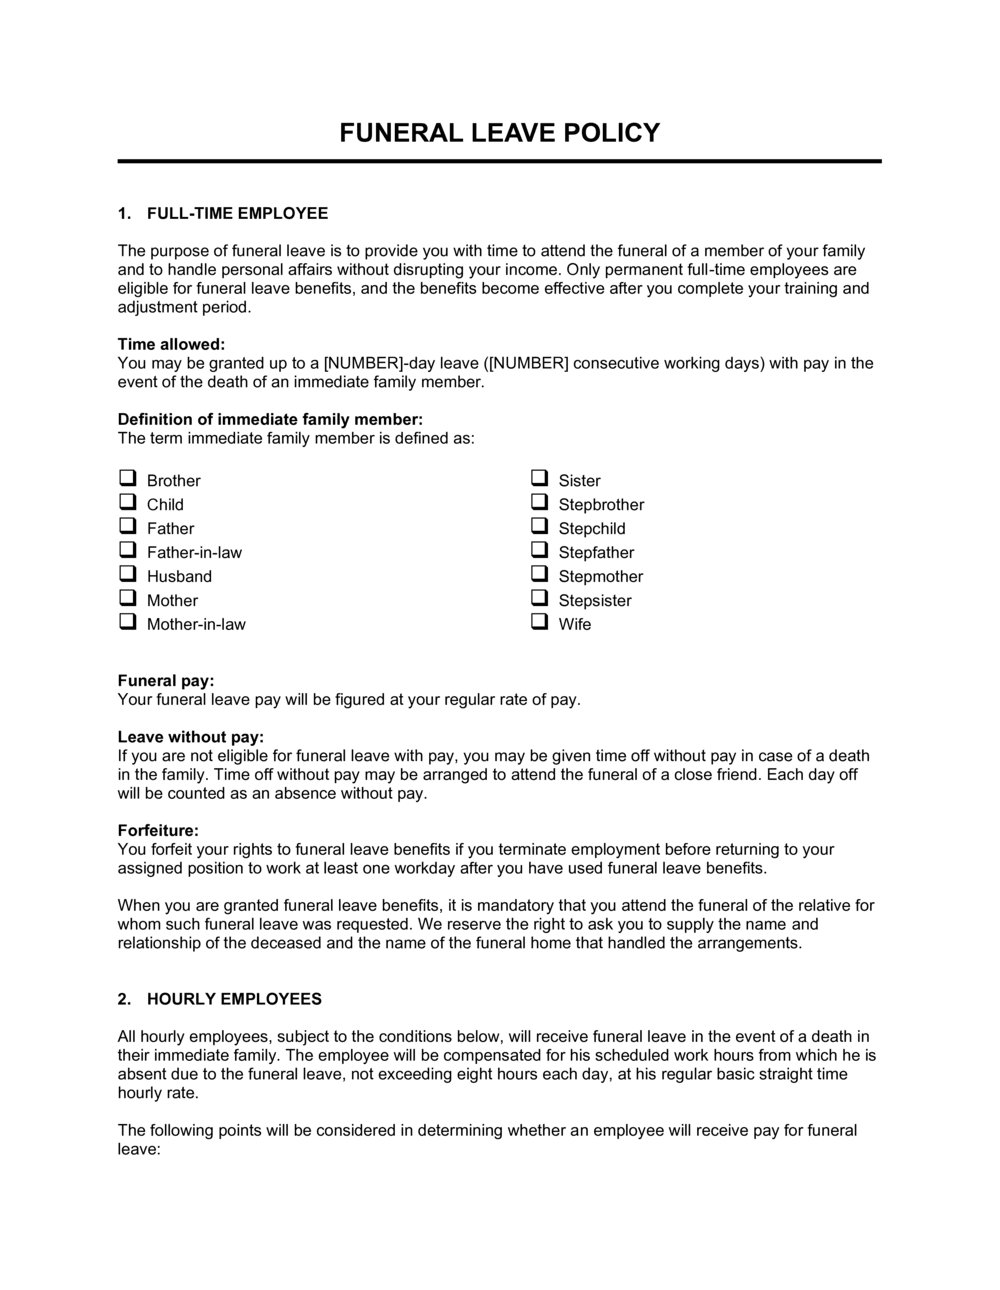 Business-in-a-Box's Funeral Leave Policy Template